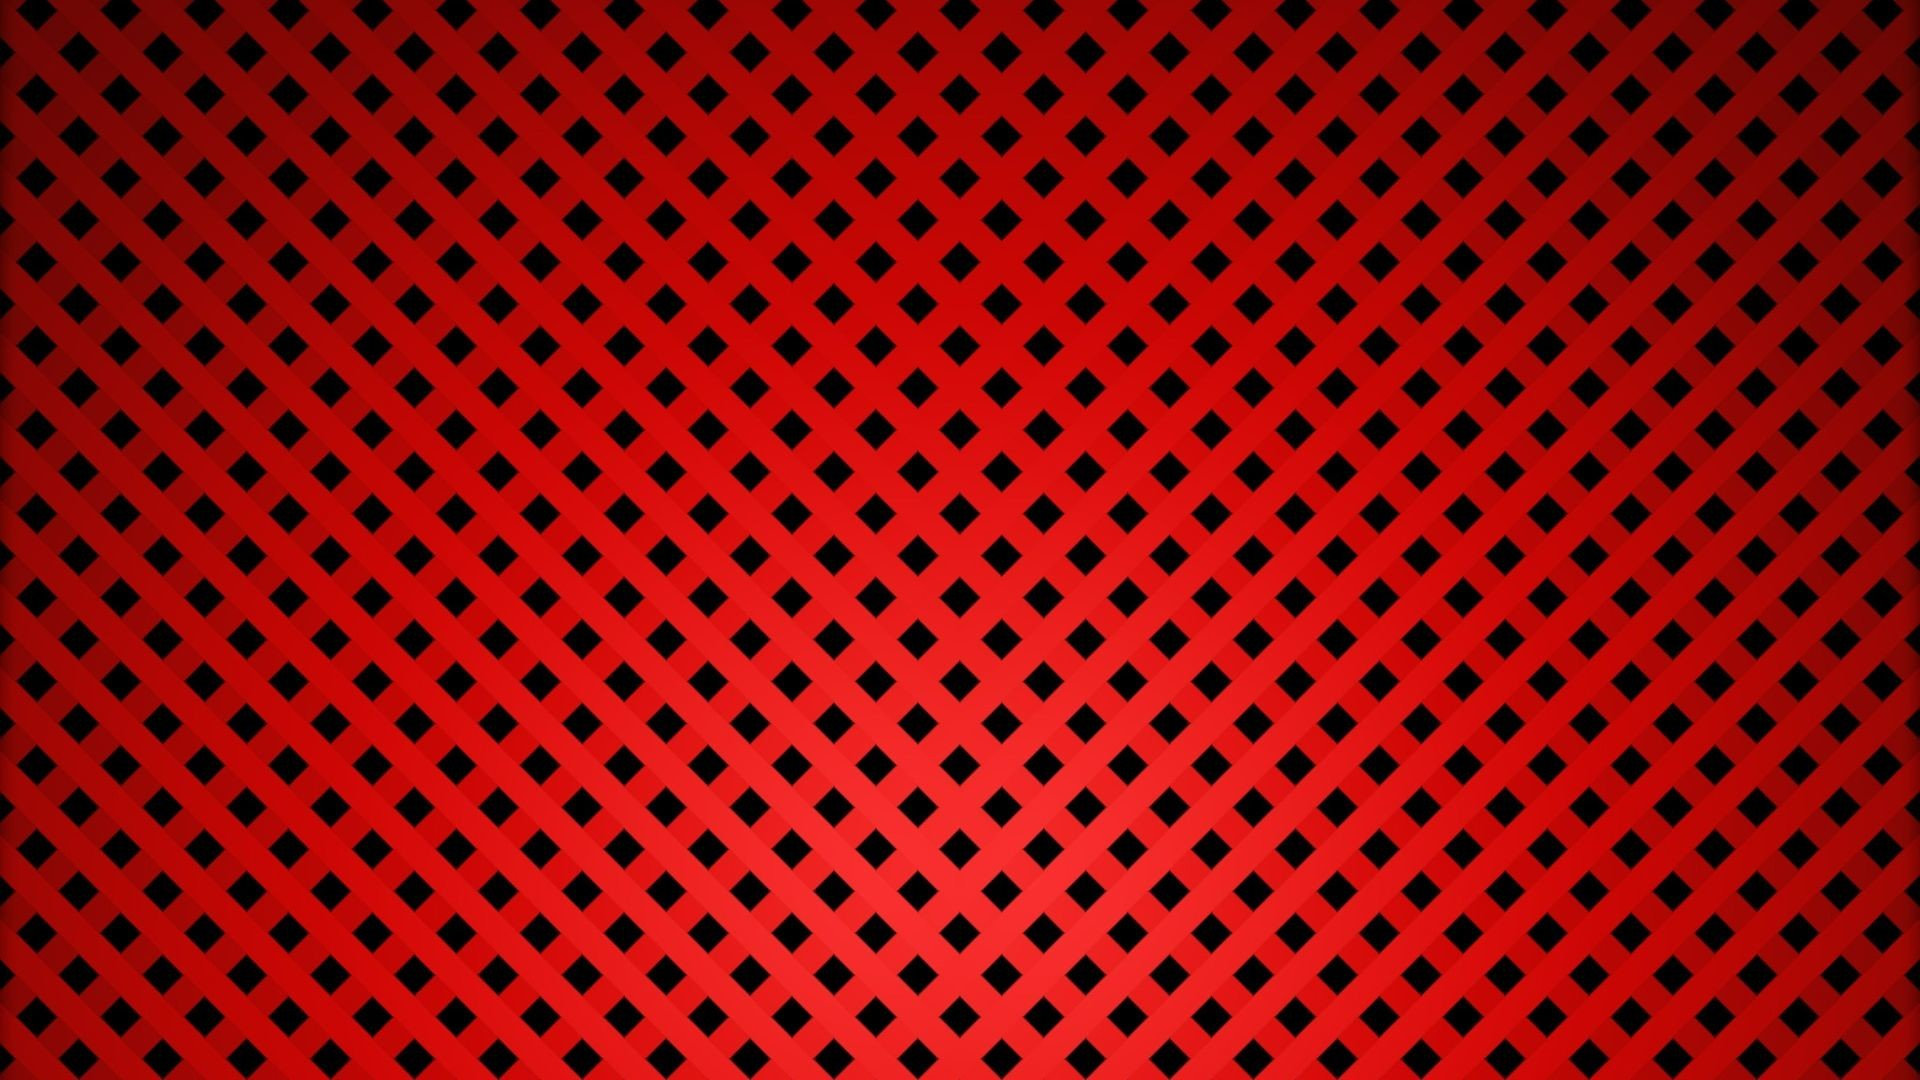 1920x1080 Collection:Red and Black